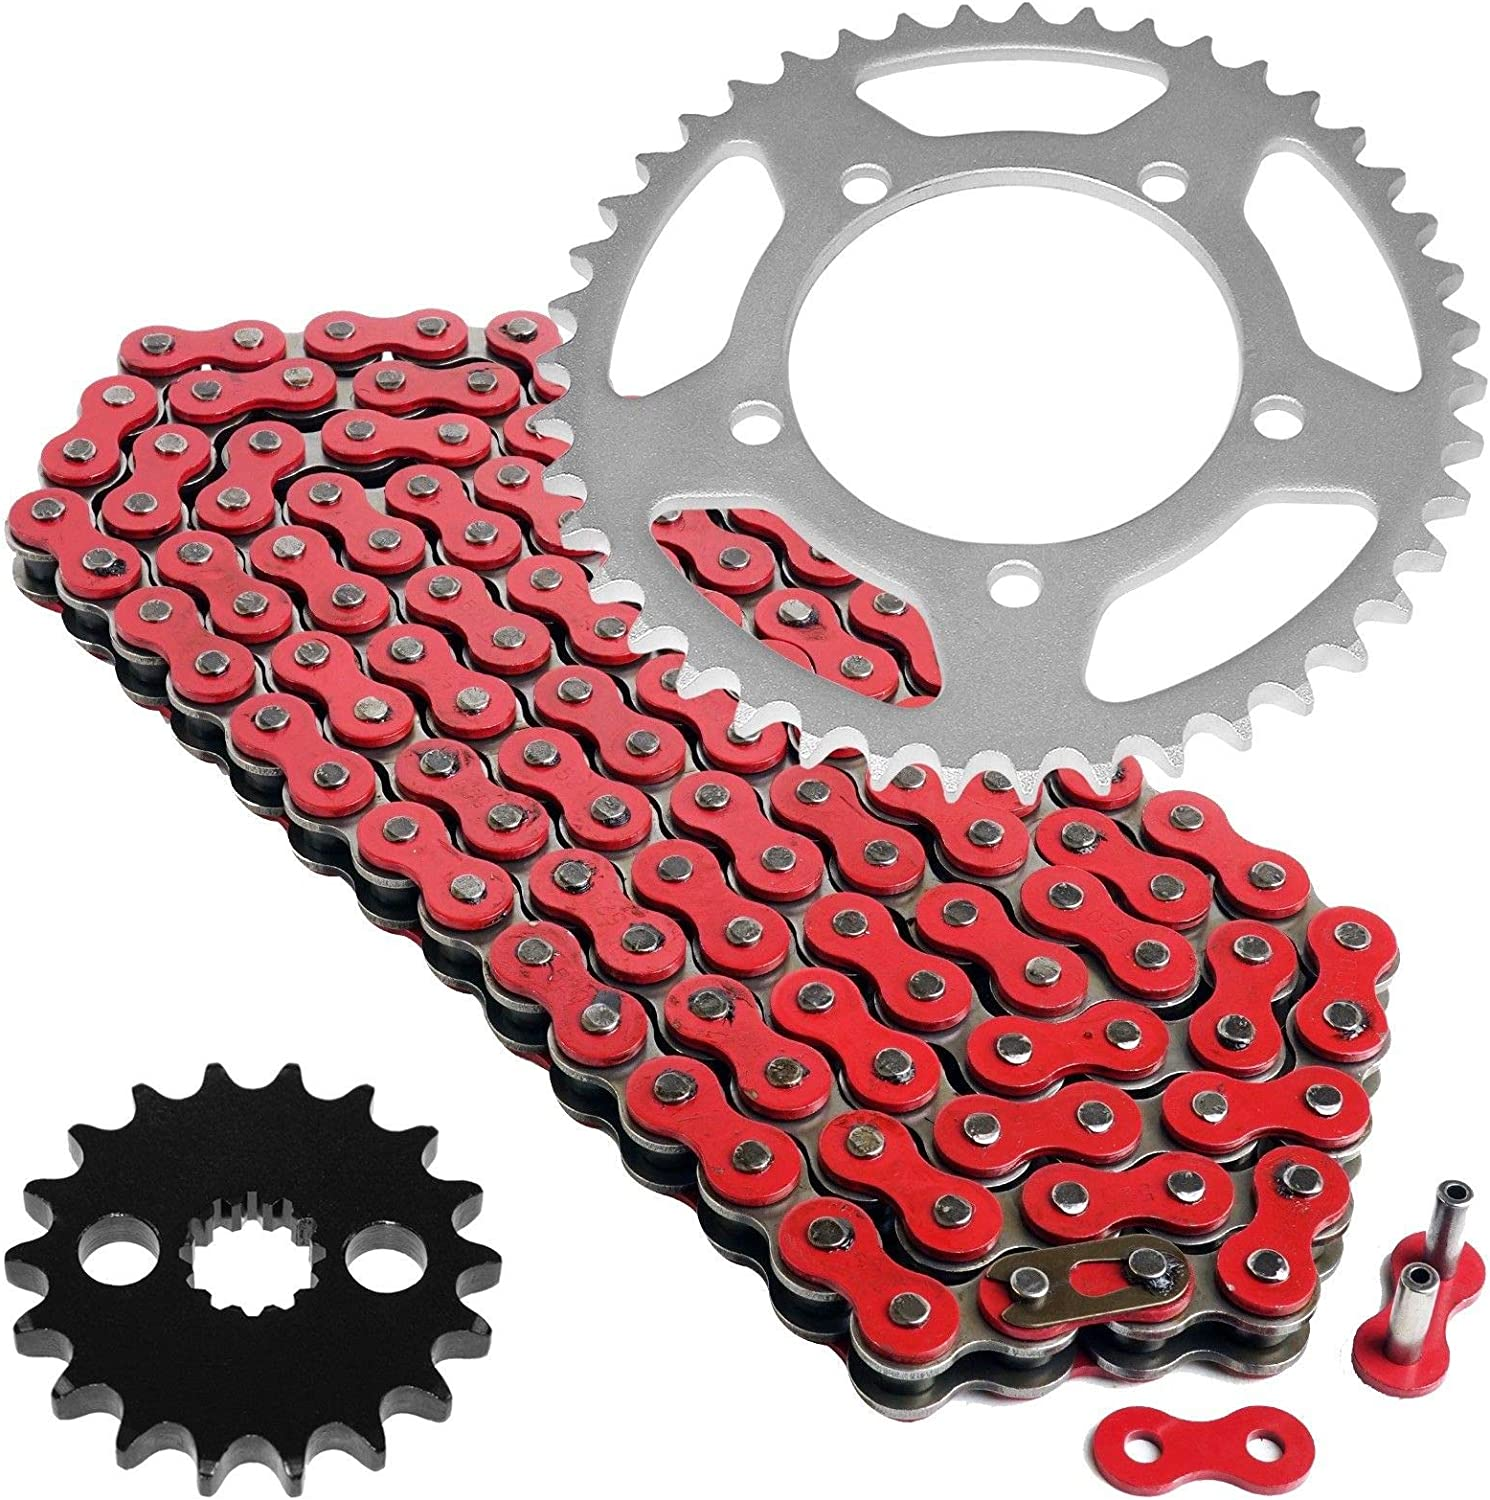 Caltric Red Drive Chain and Kit Compatible with Albuquerque Mall Suzuki Max 50% OFF Sprocket